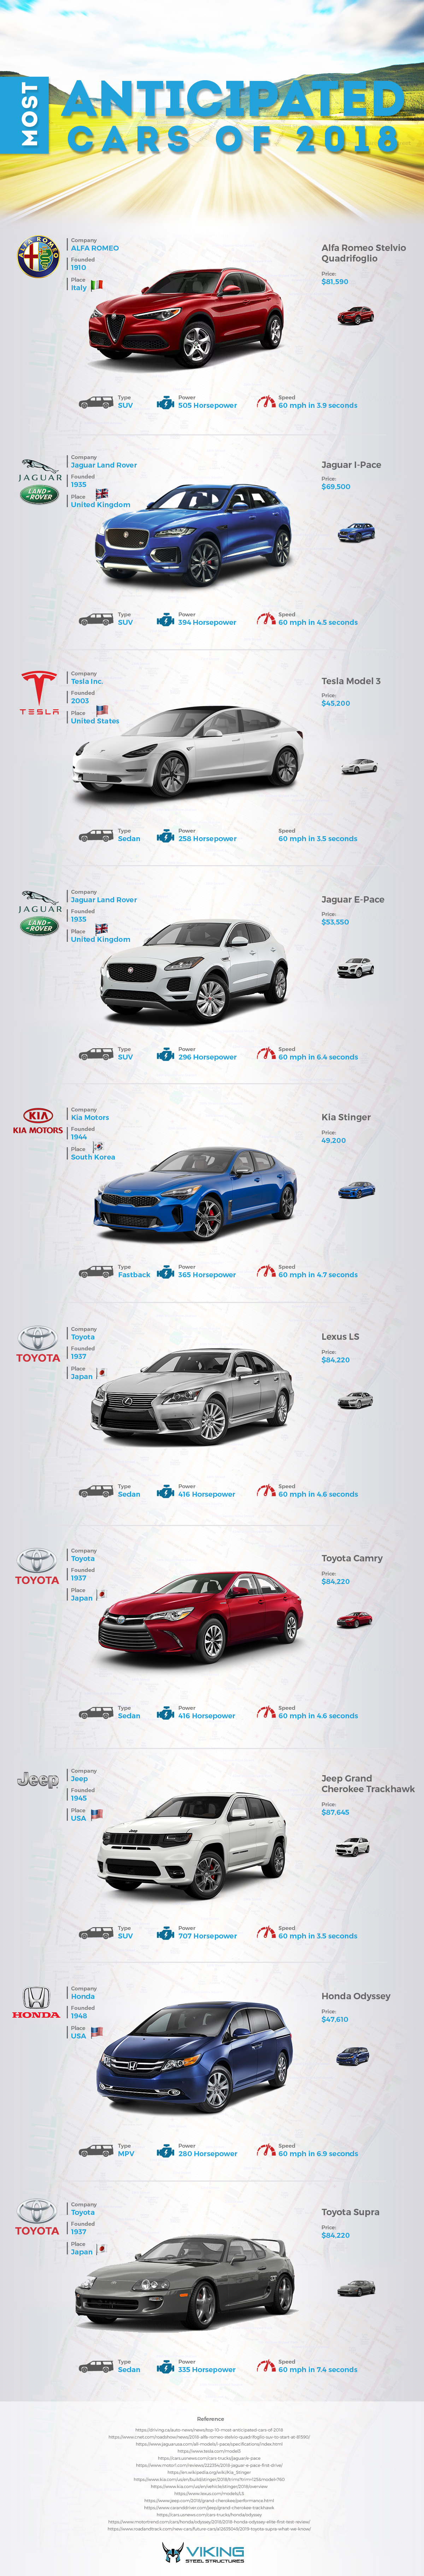 most-anitcipated-cars-of-2018